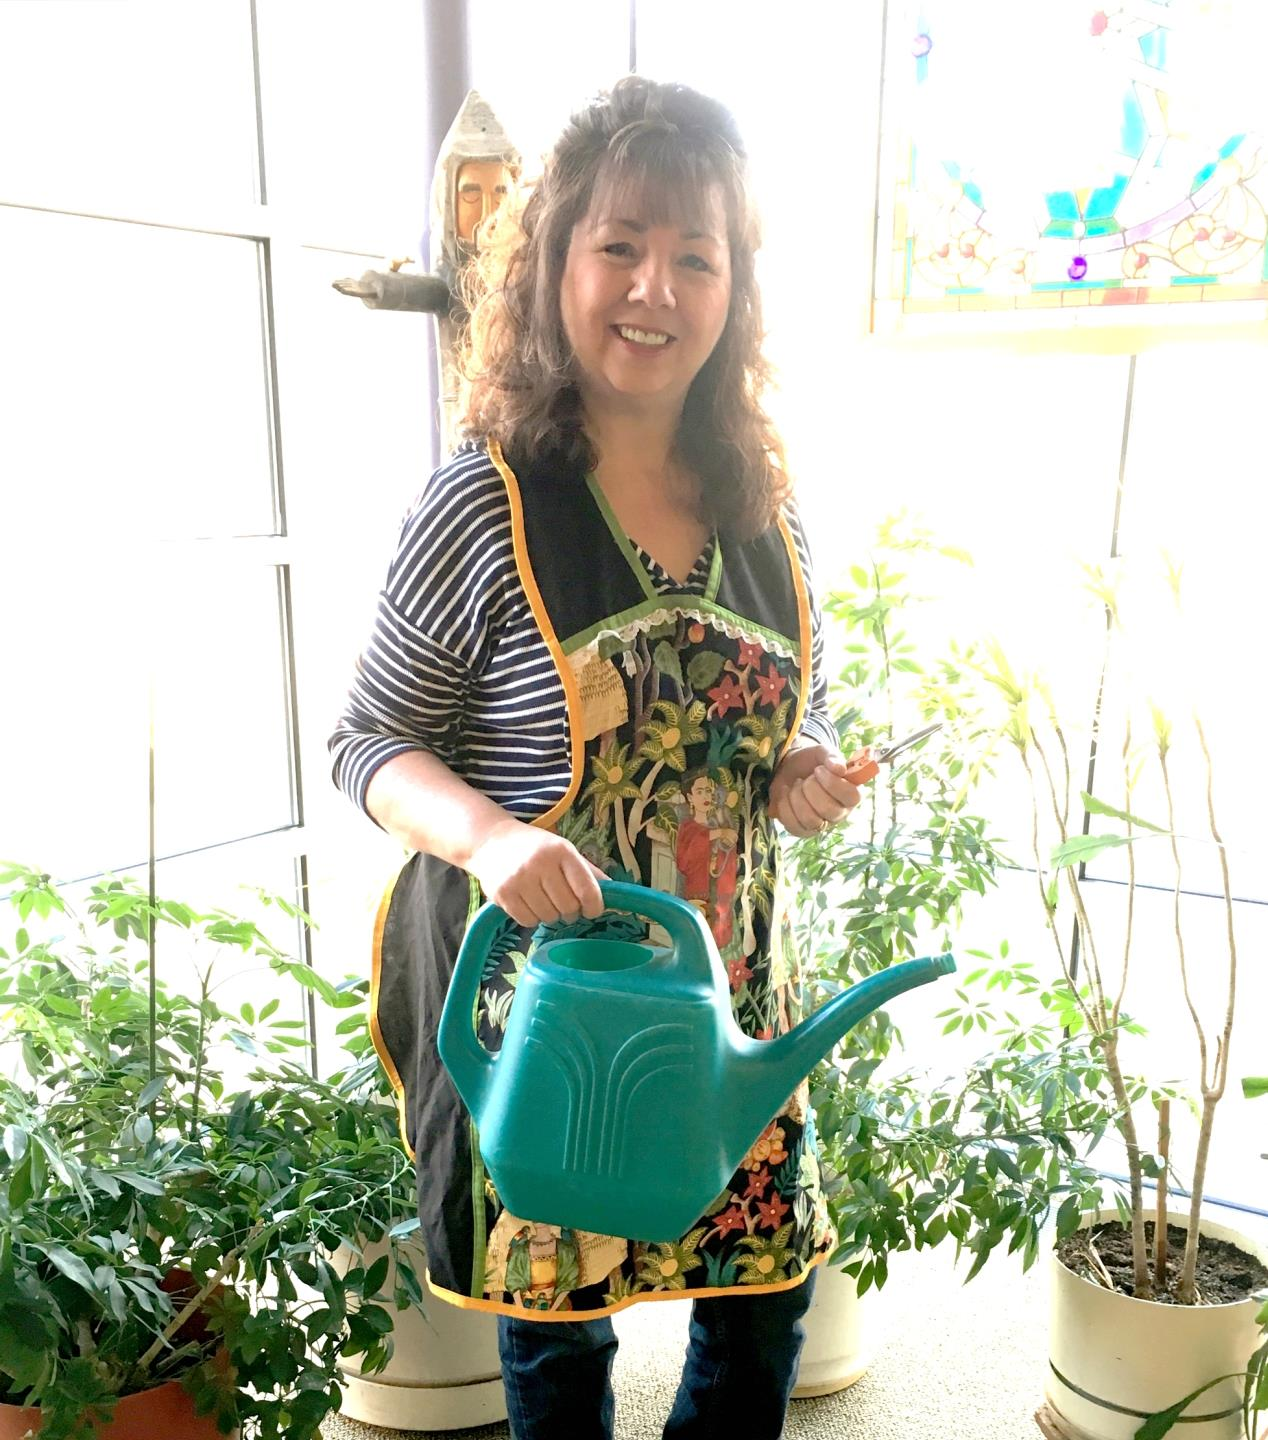 Library volunteer smiling while watering plants in the Childrens section